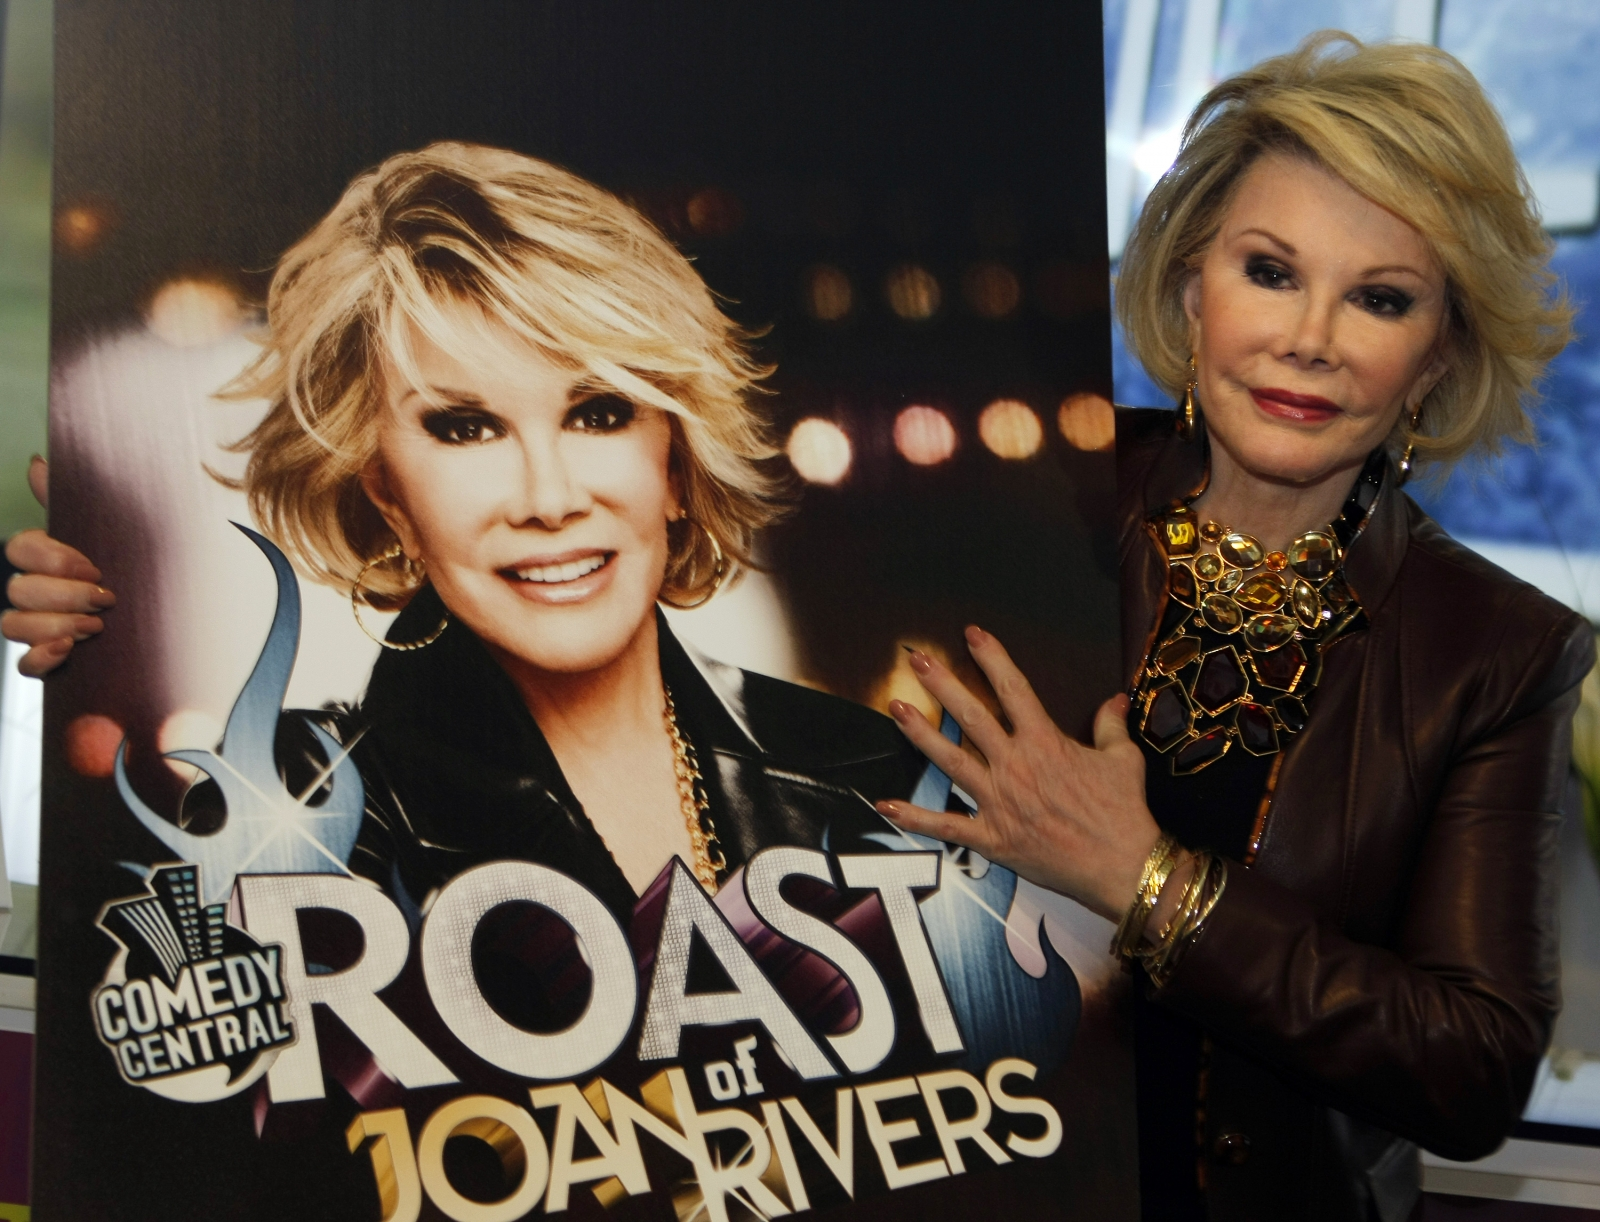 Joan Rivers Funeral 81 Year Old Comedian Joked Donate My